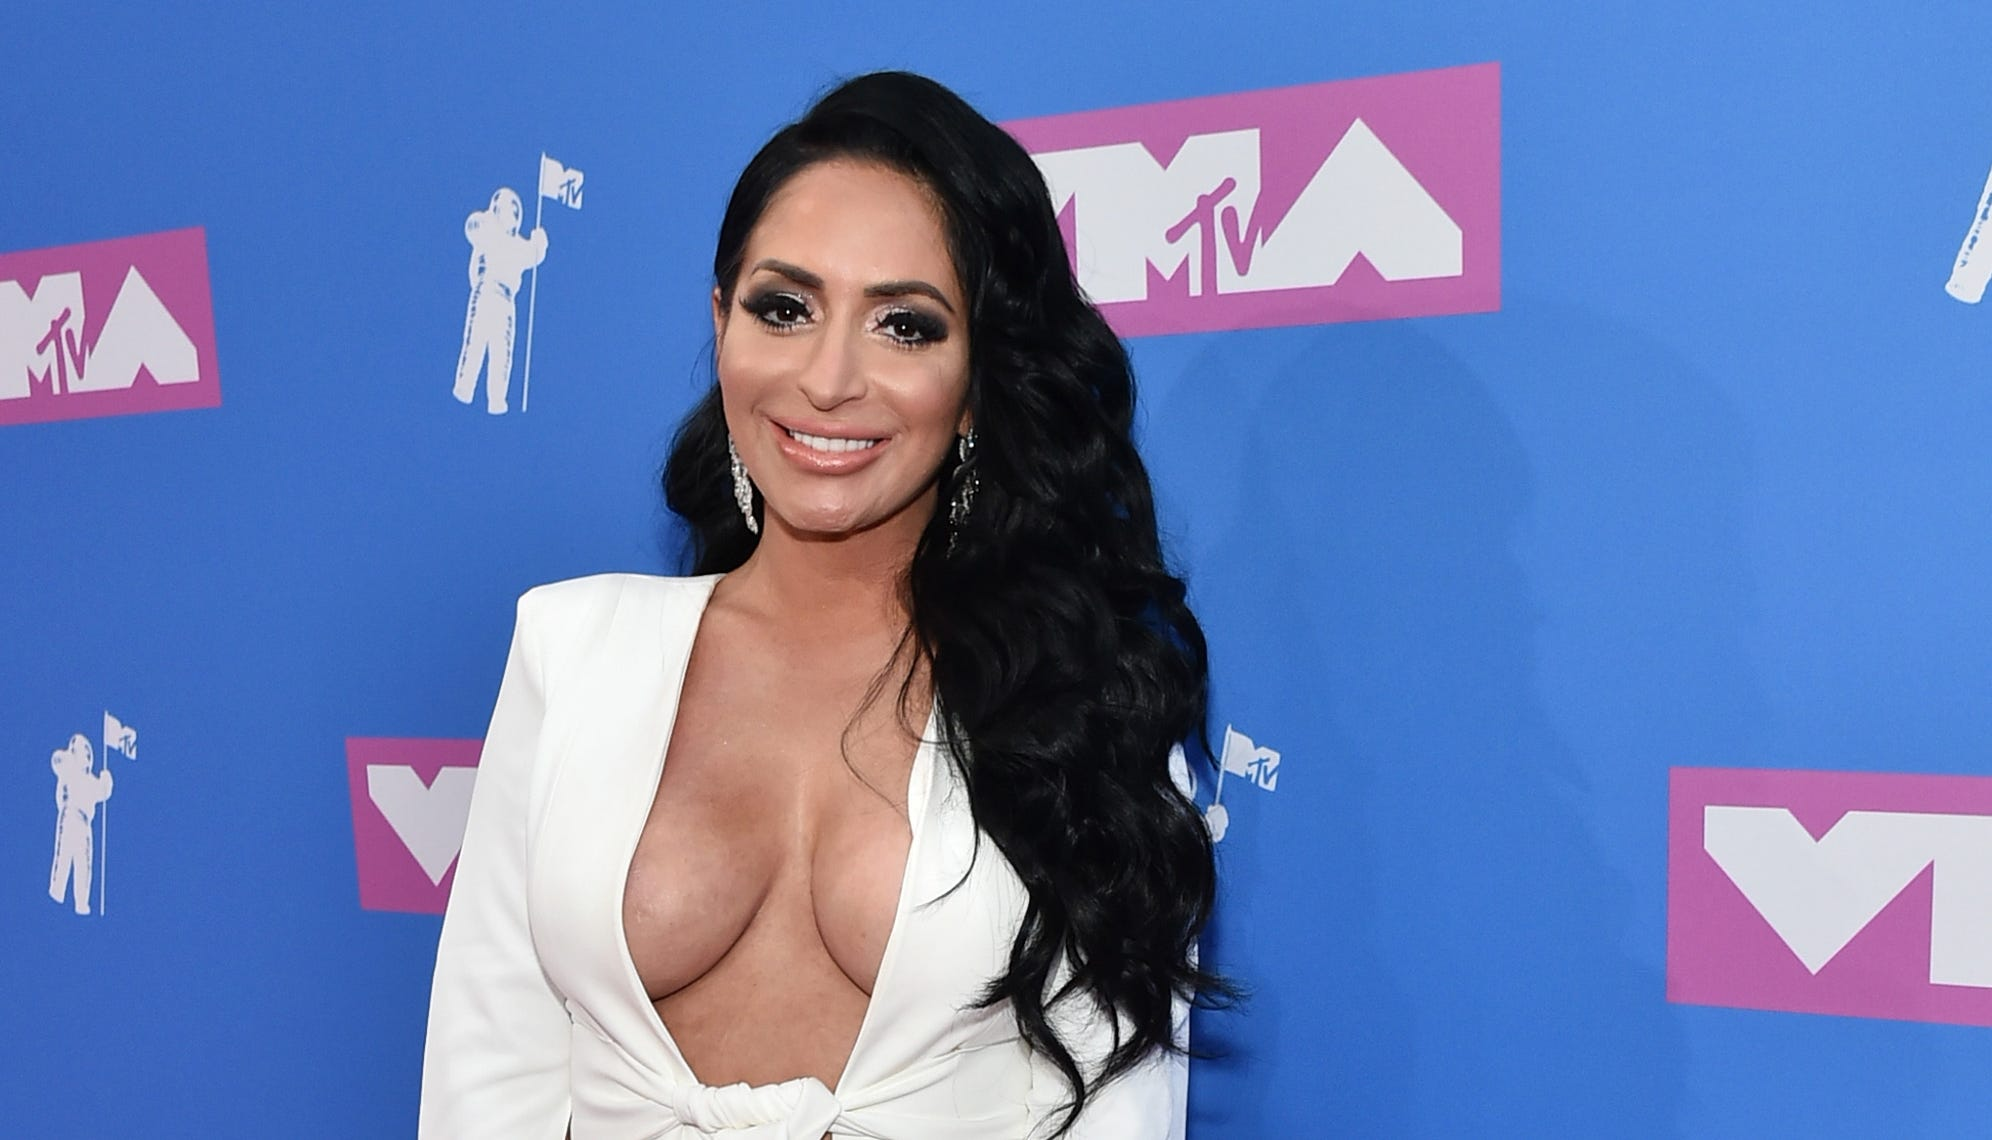 'Jersey Shore': Wedding bells ring for Angelina Pivarnick; castmates celebrate, reports say